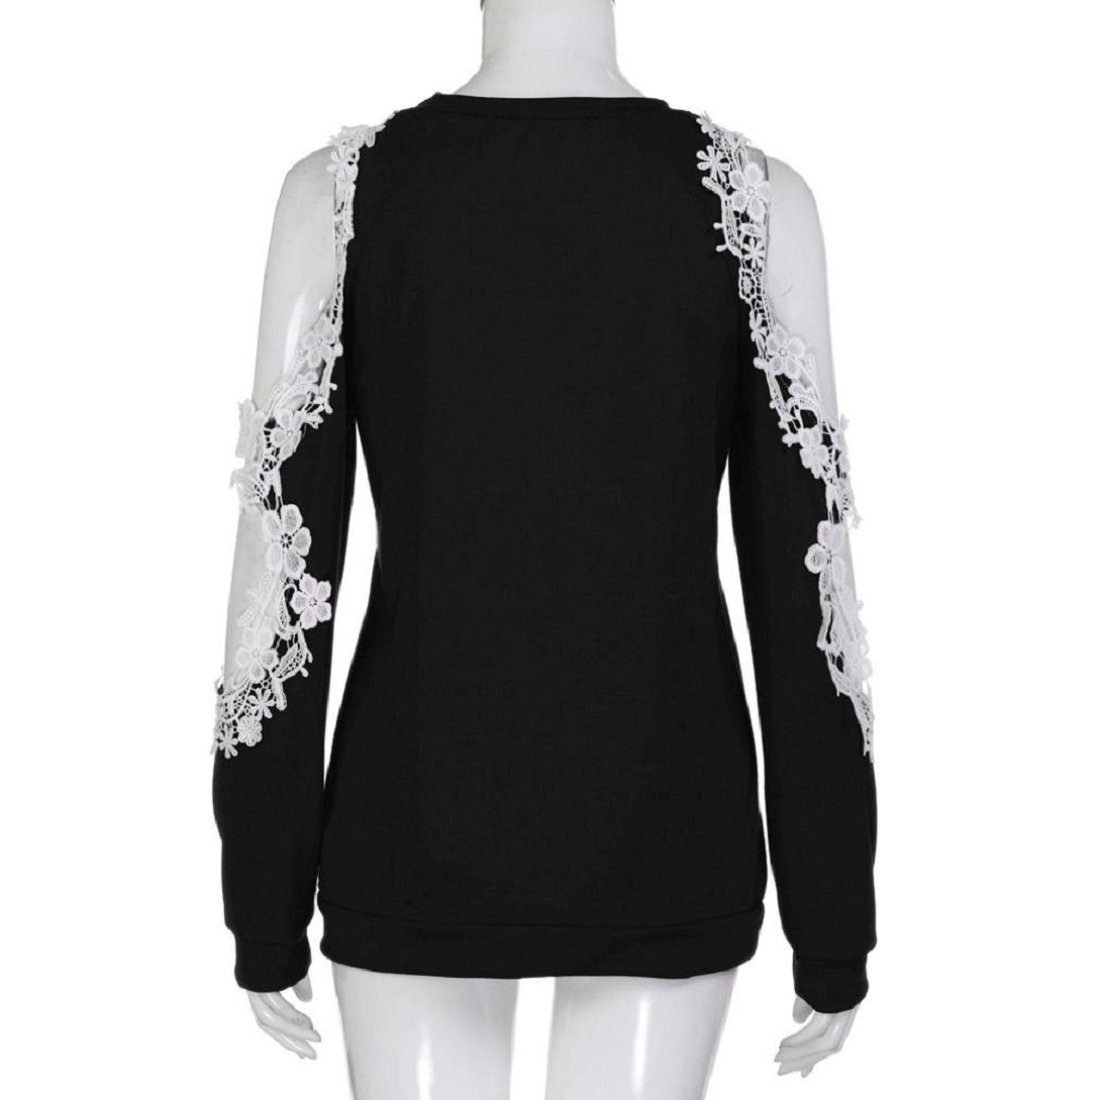 d70b8b086f3b36 Women s Off Shoulder Tops Ladies Long Sleeve Casual Lace Blouse Solid Color  T-Shirt Tops Shirt at Amazon Women s Clothing store